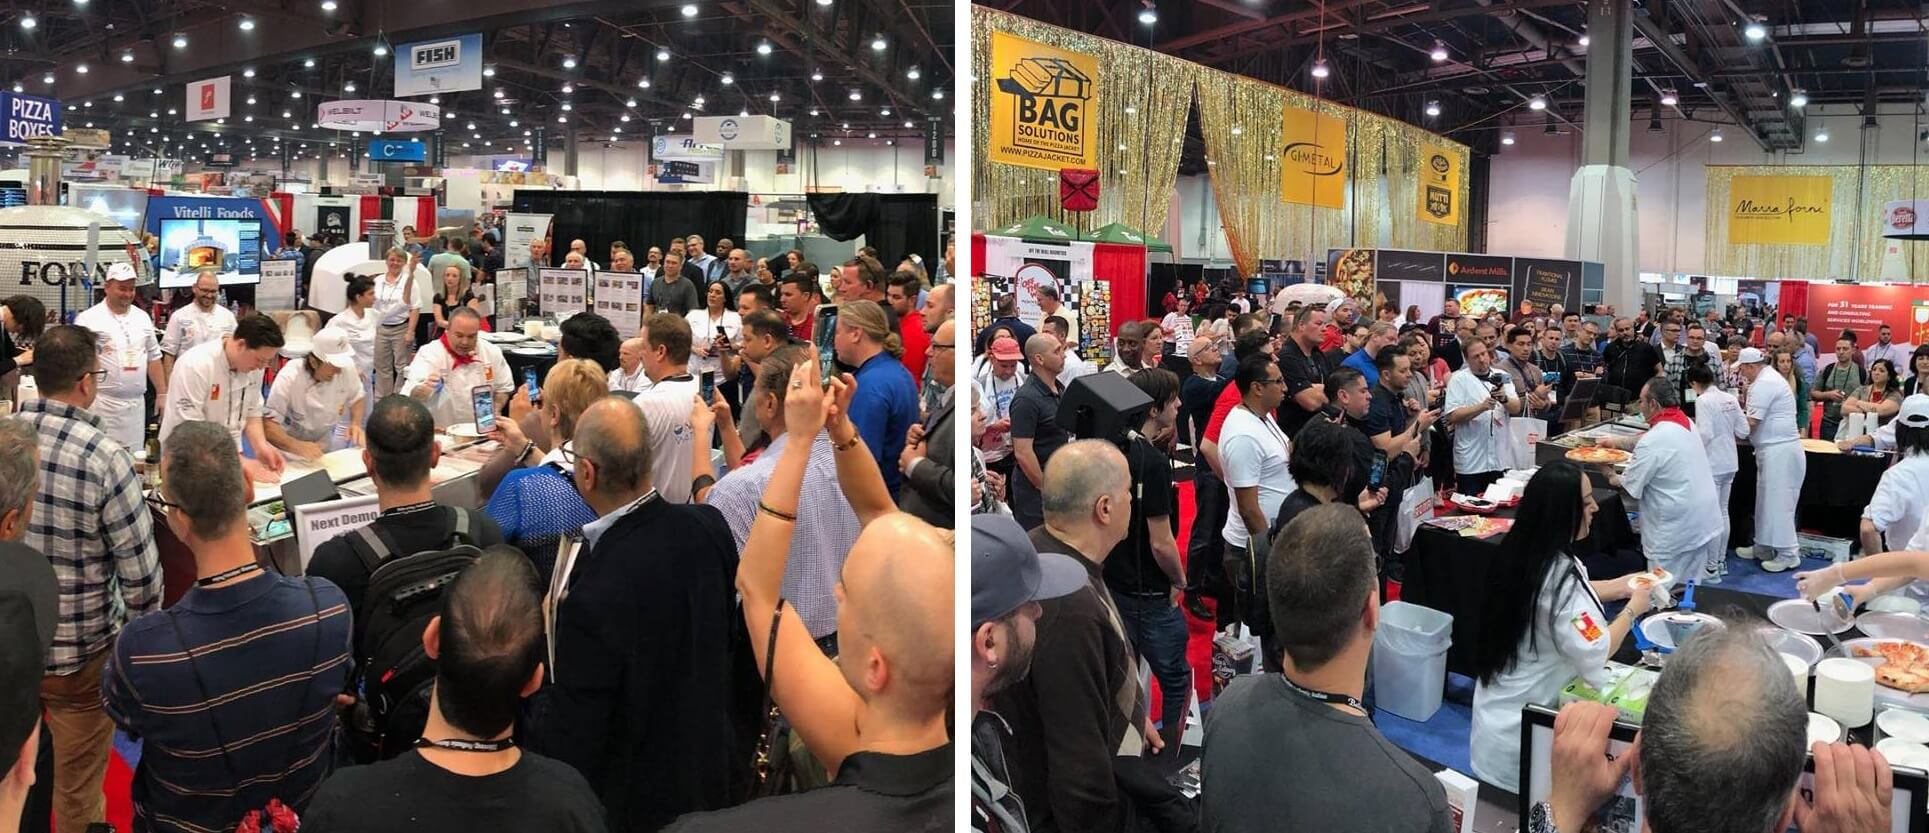 Crowd-chefs-forno bravo booth